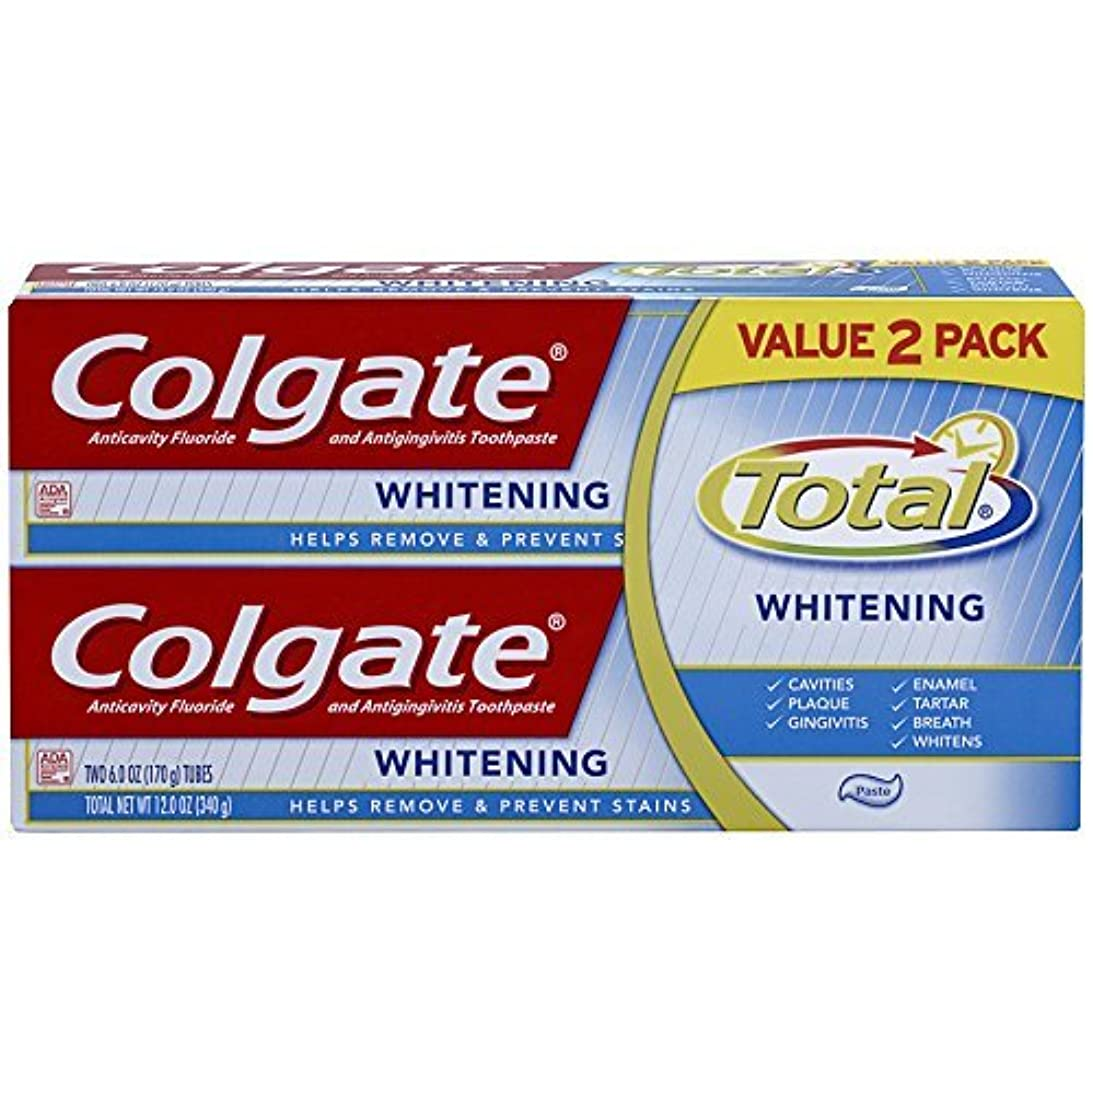 斧アトミック深さColgate Total Whitening Toothpaste Twin Pack - 6 ounce [並行輸入品]